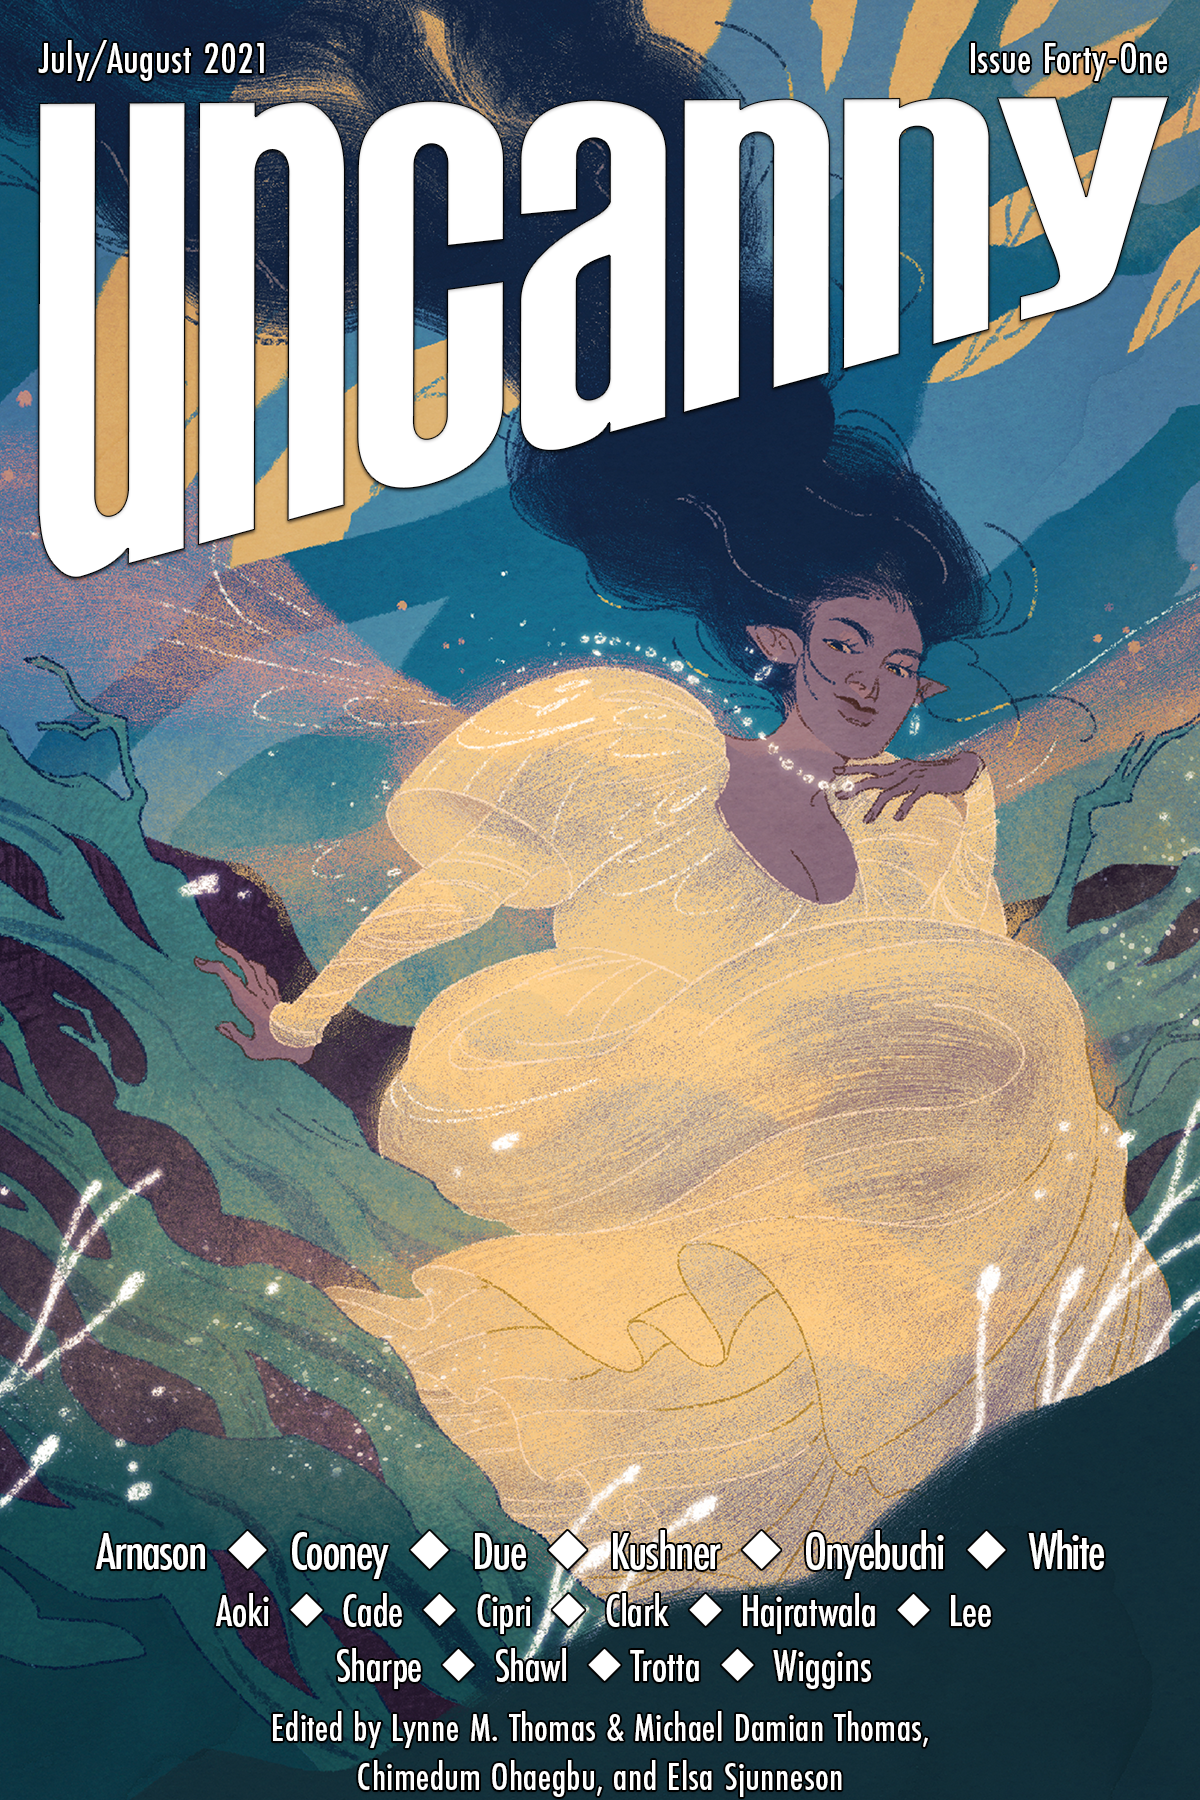 """The Uncanny Magazine Issue 41 Cover by Alexa Sharpe. It depicts a brown-skinned elf with flowing blue-black hair and a voluptuous white dress, against a background of flowing grasses. The names of the contributors and the words """"Uncanny, July/August 2021, Issue 41"""", are on the image."""